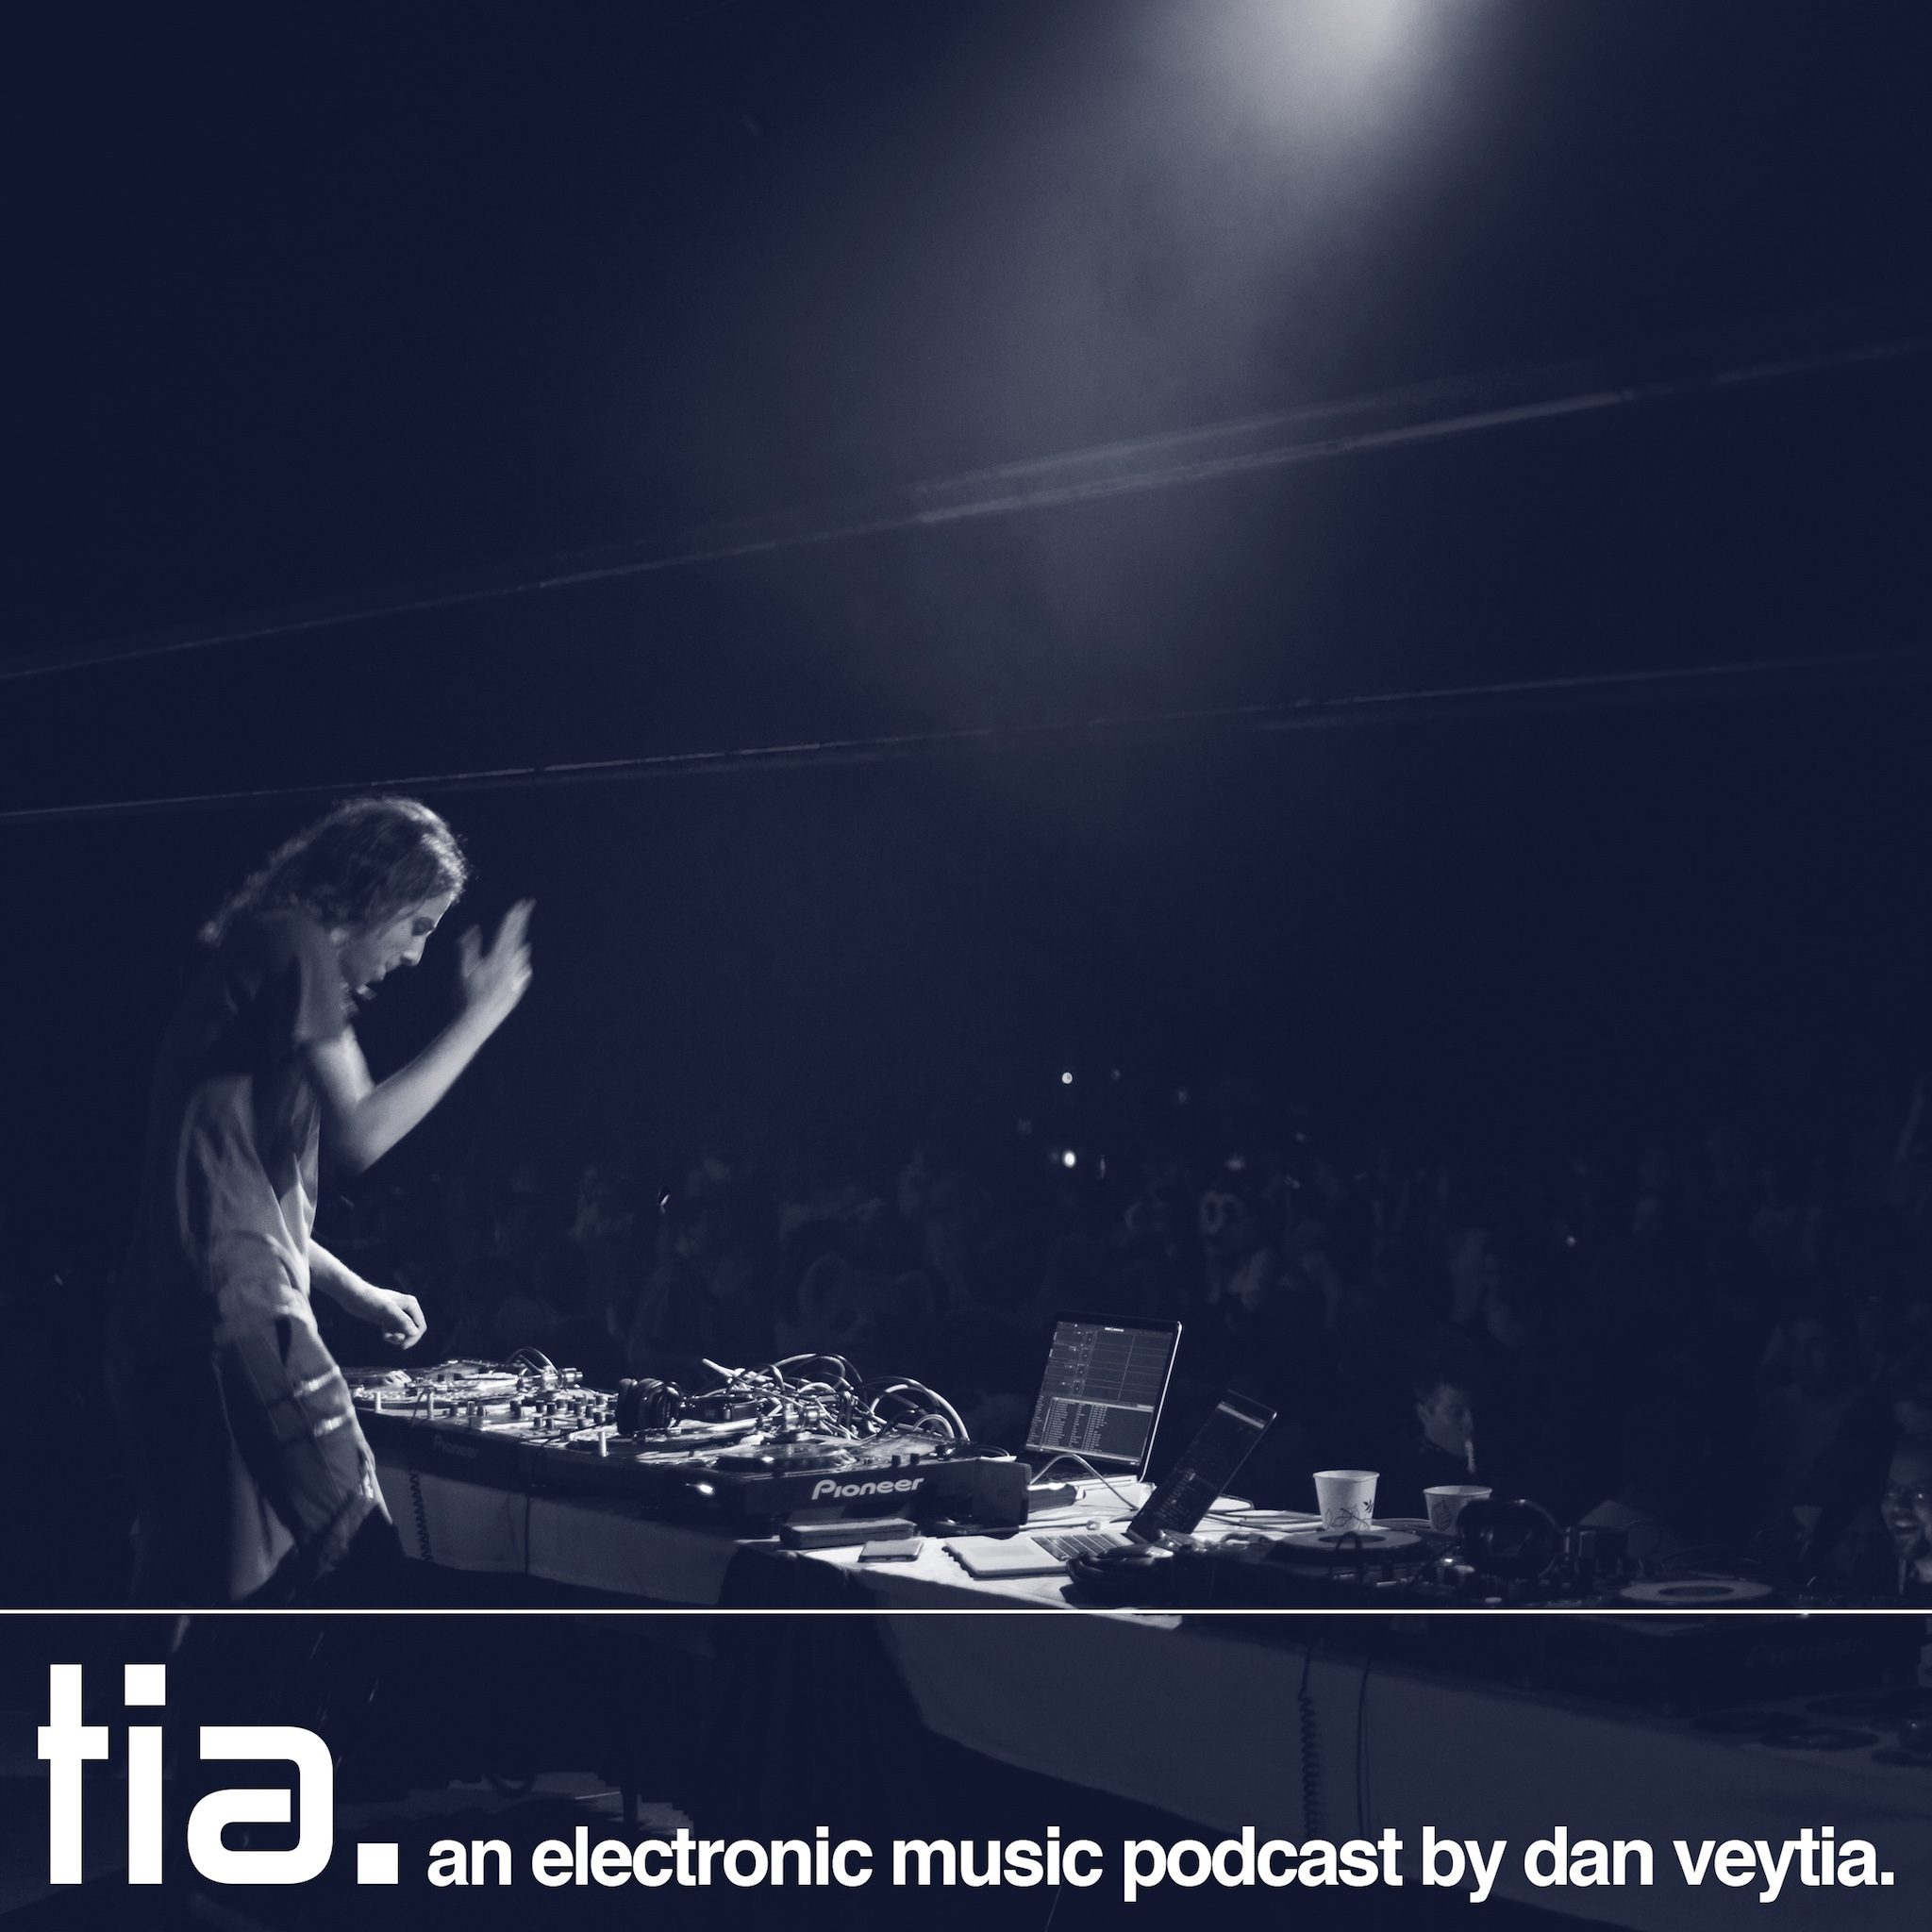 tia. an electronic music podcast by Dan Veytia.